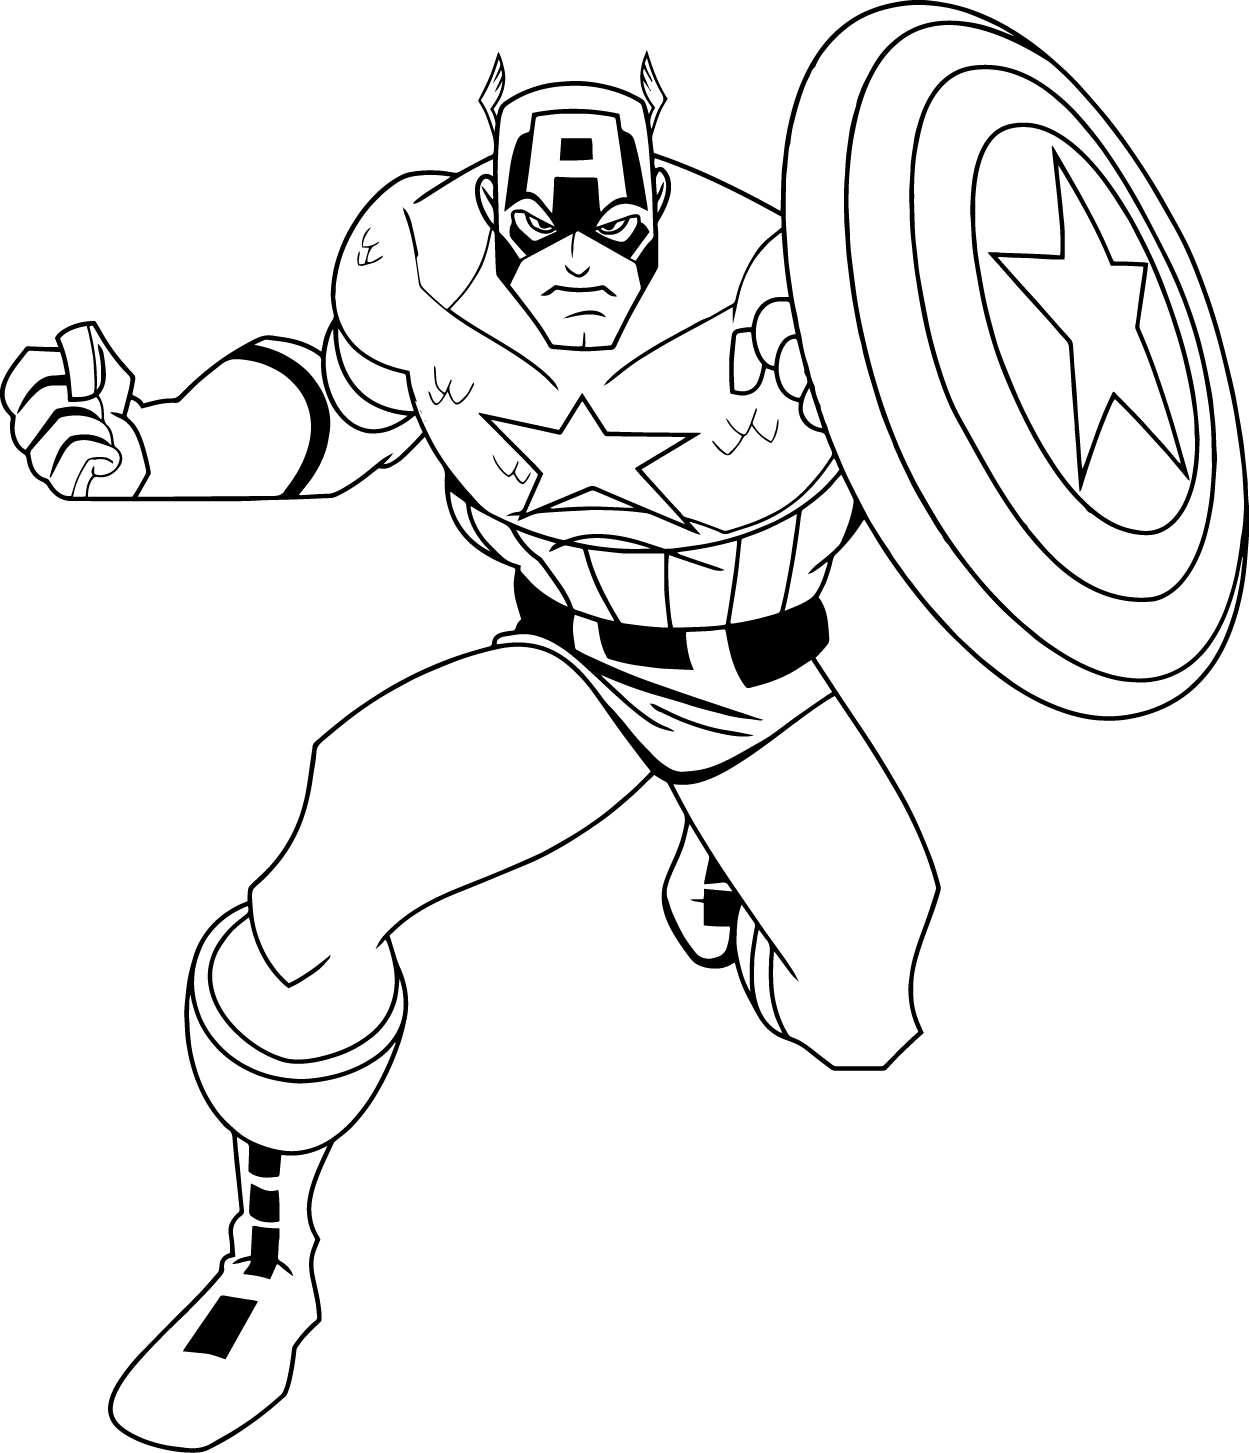 coloring pages captain america free printable captain america coloring pages for kids pages captain coloring america